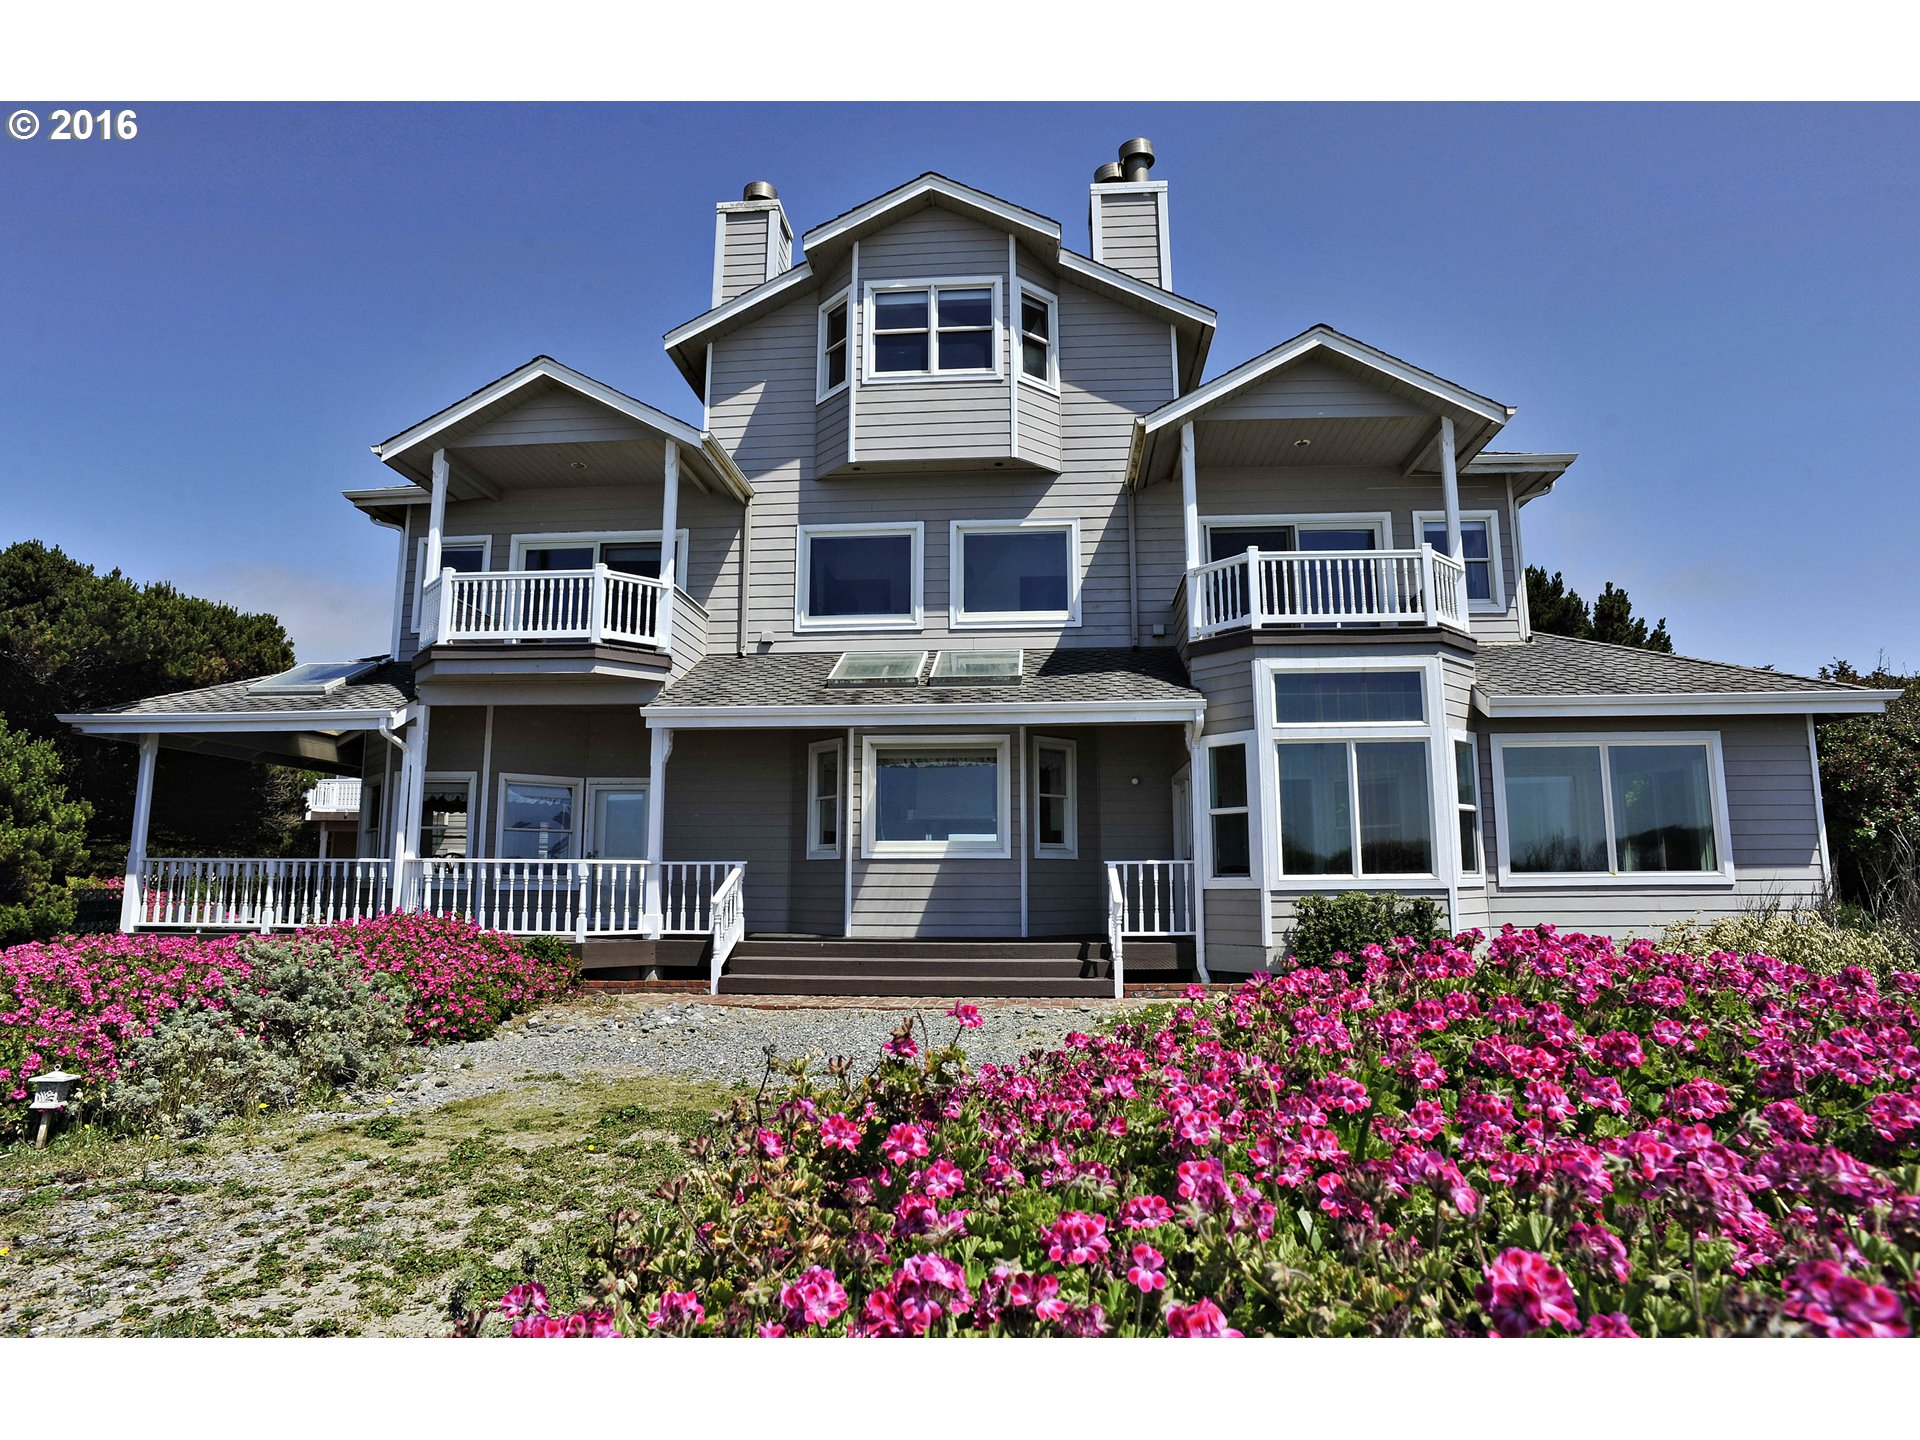 33026 NESIKA RD Gold Beach, Brookings Home Listings - Pacific Coastal Real Estate